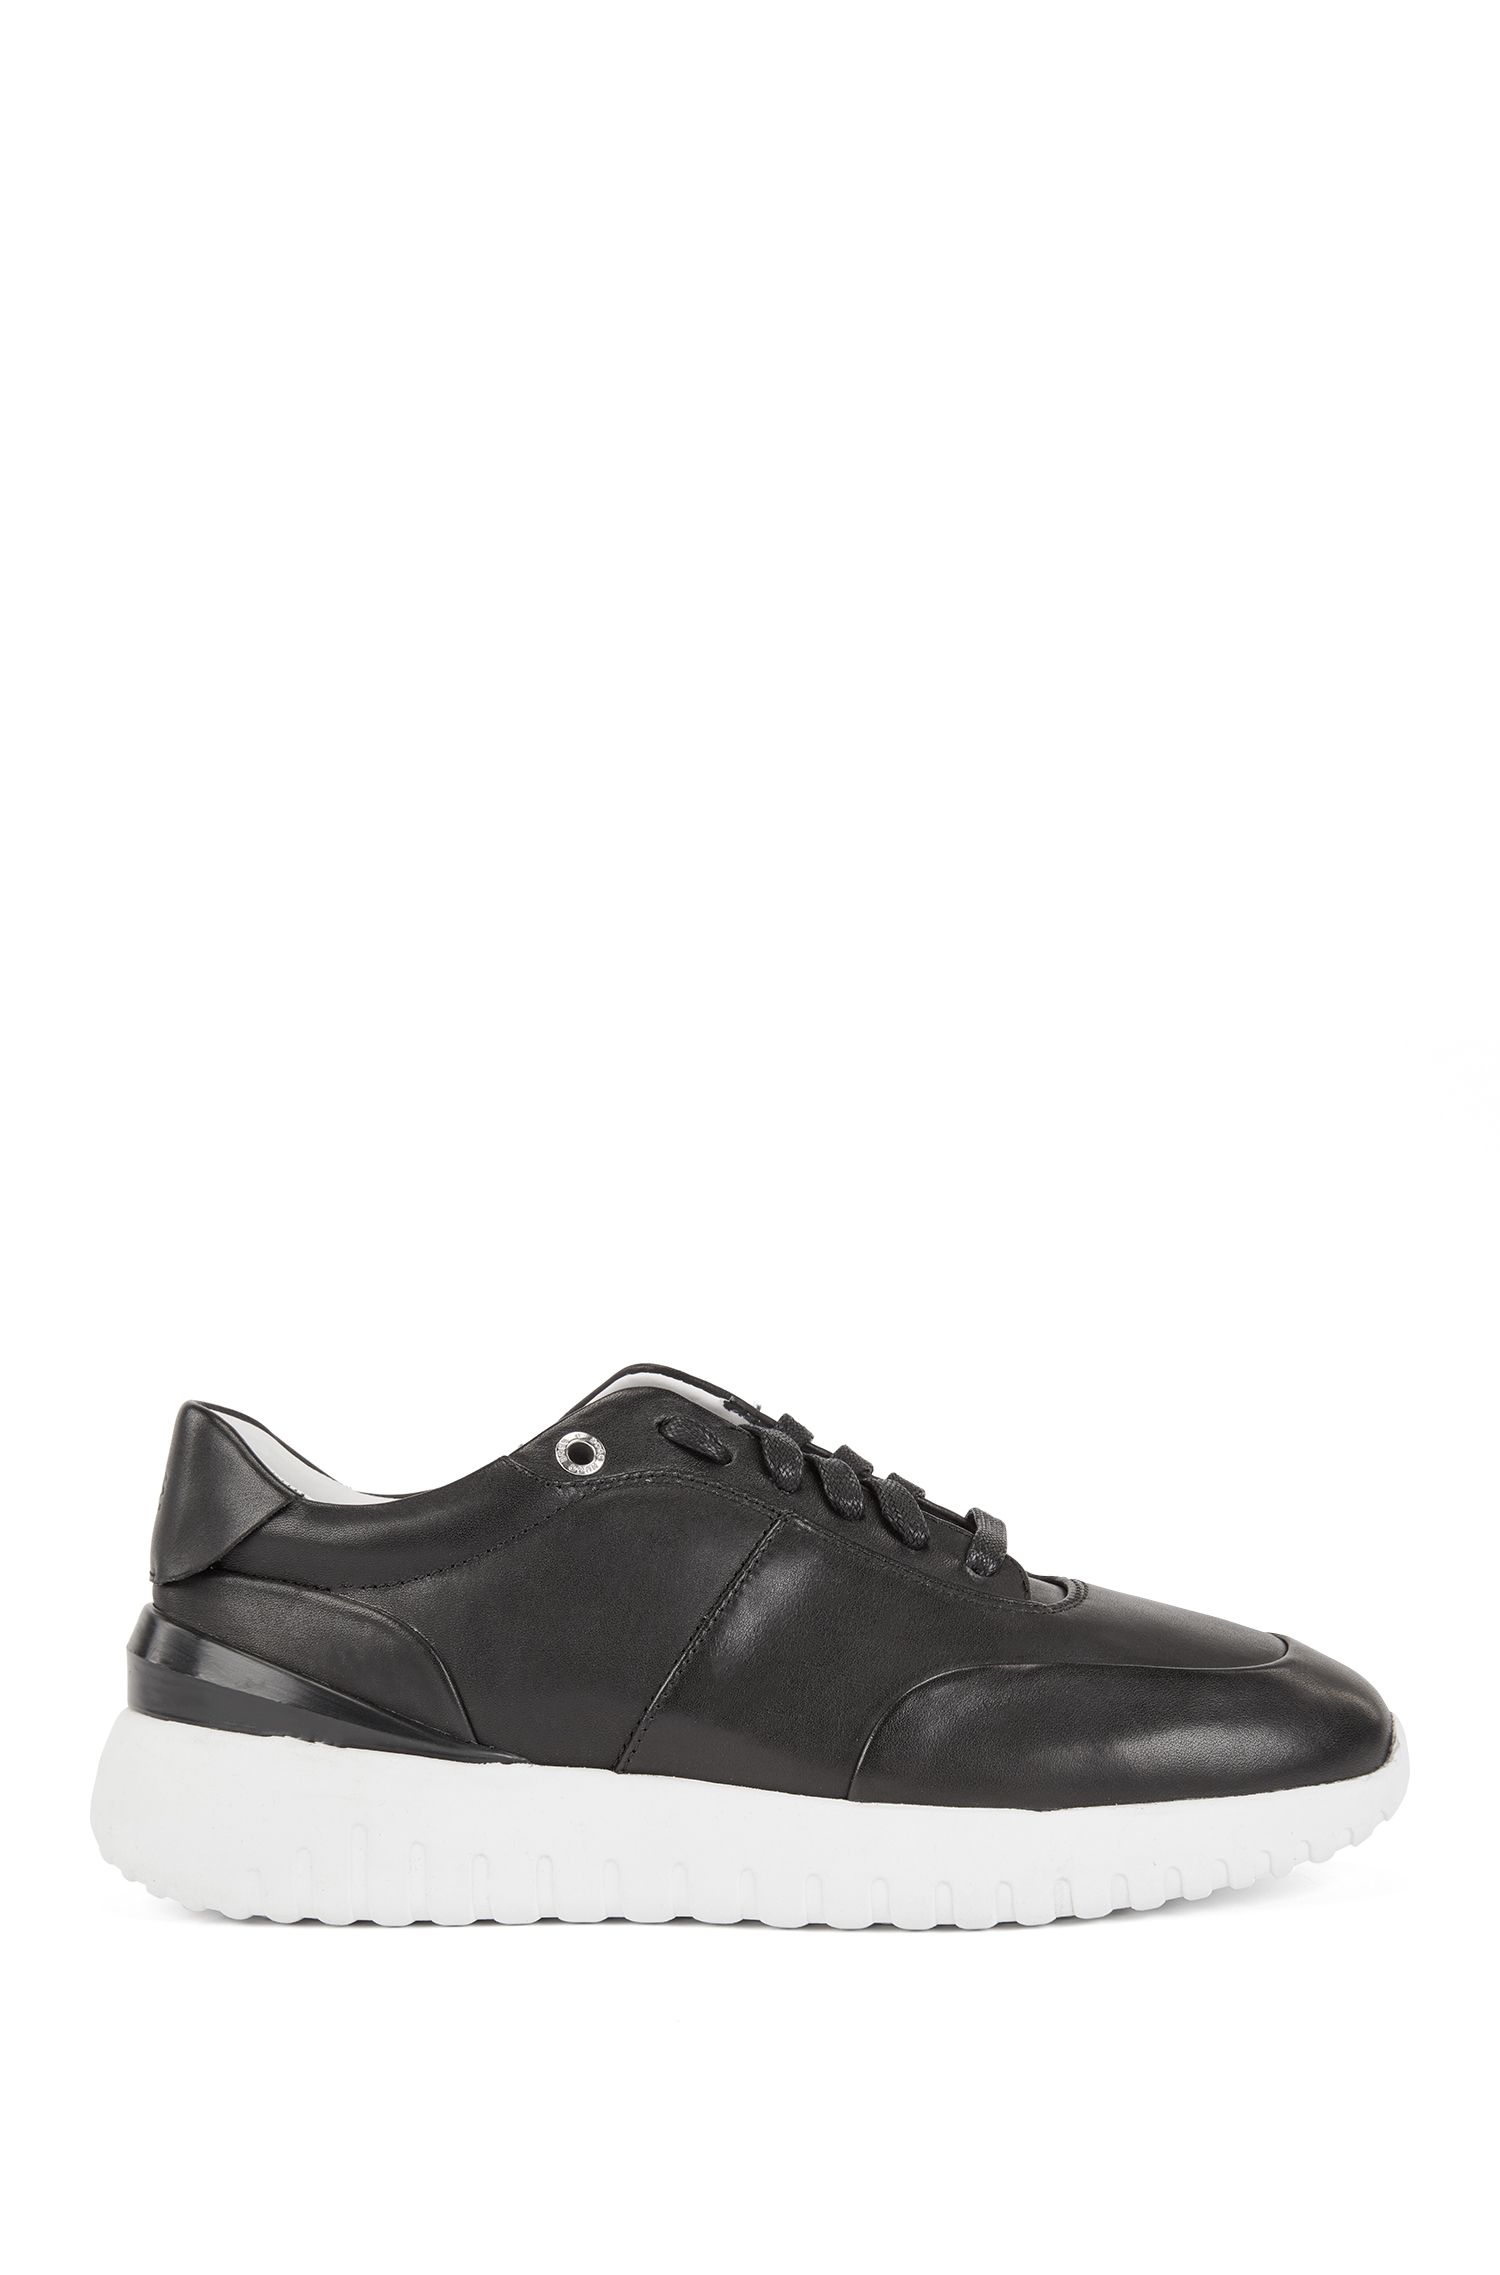 Leather trainers with pumped-up outsole, Black